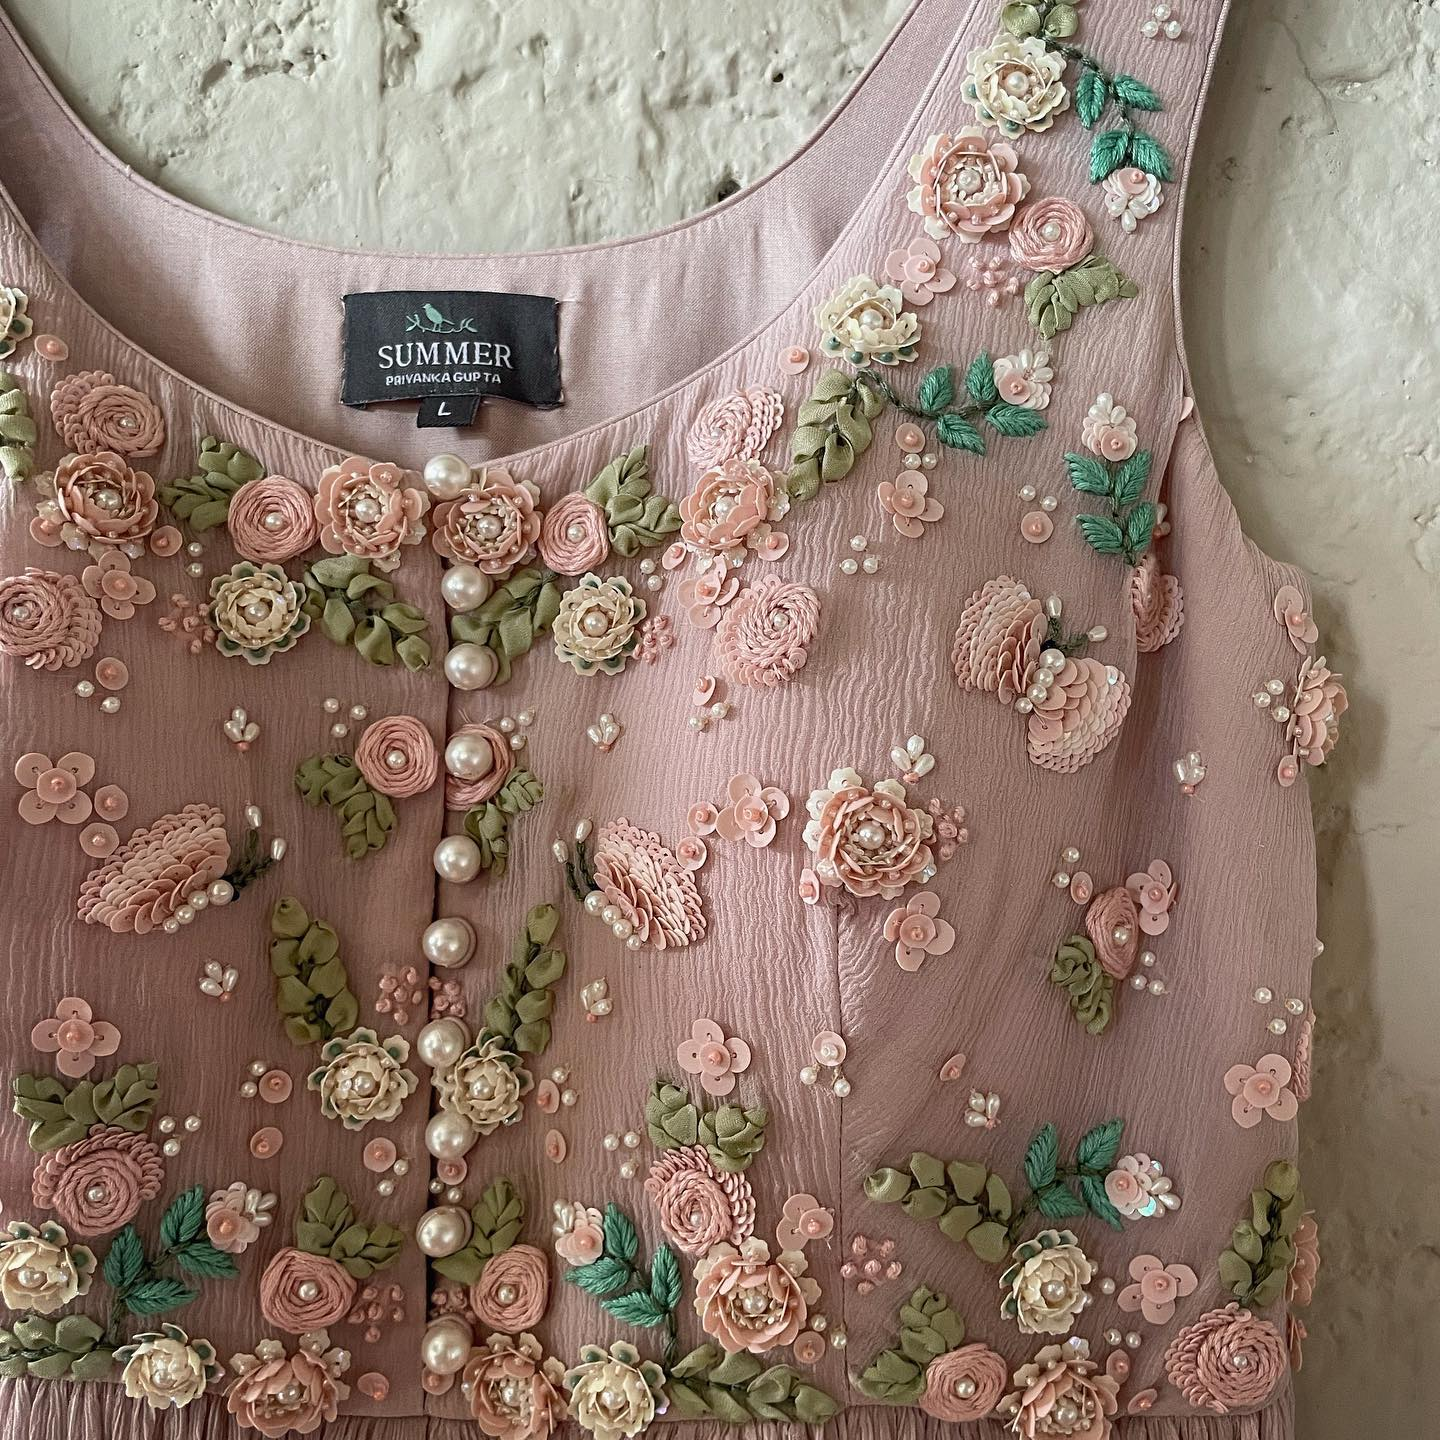 Stunning English color floral classy 3D hand embroidery work.  2021-09-18